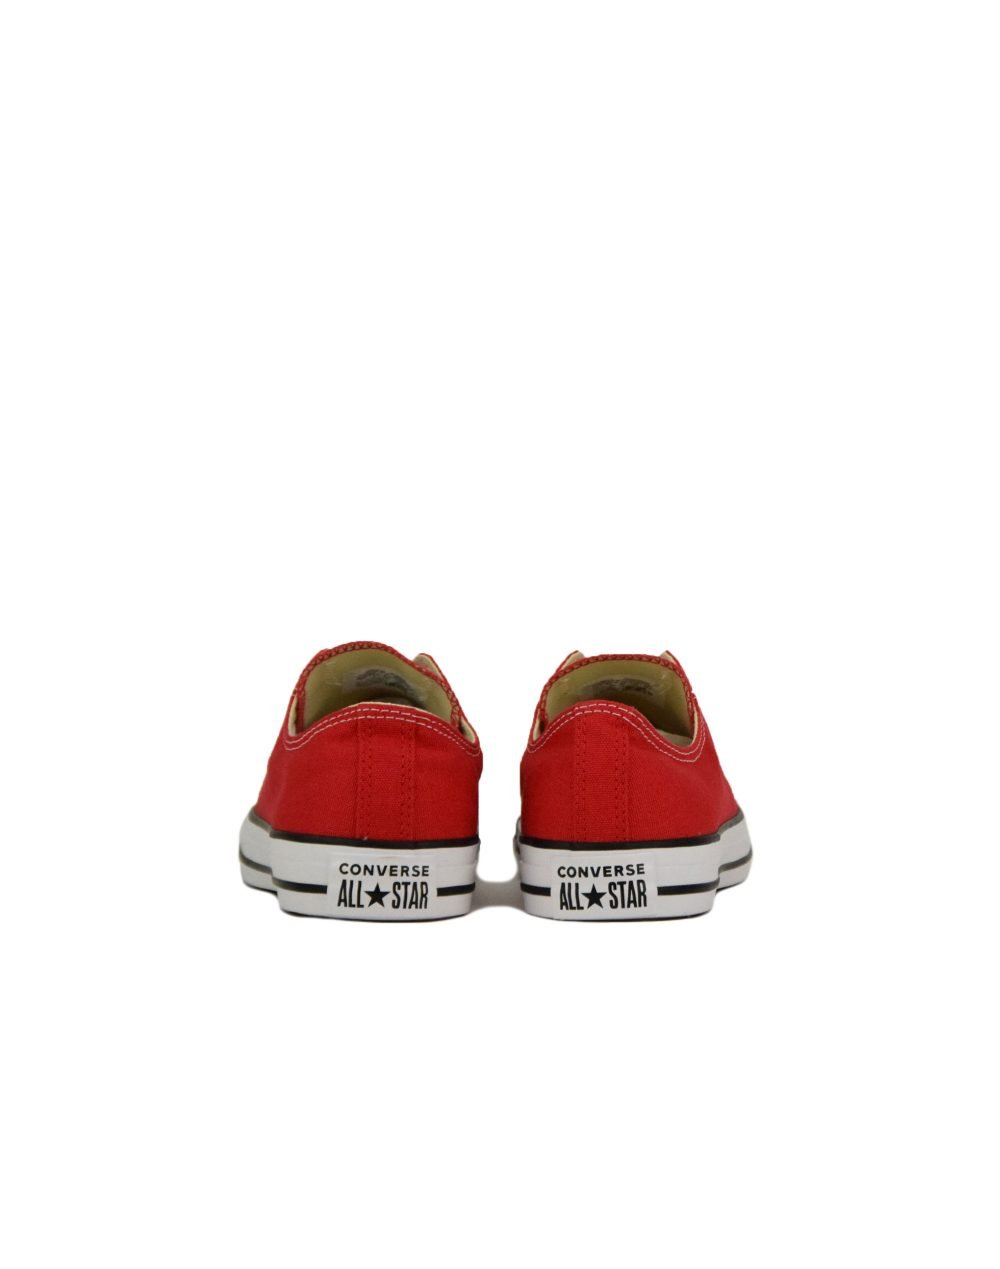 Converse Chuck Taylor All Star OX (M9696) Red